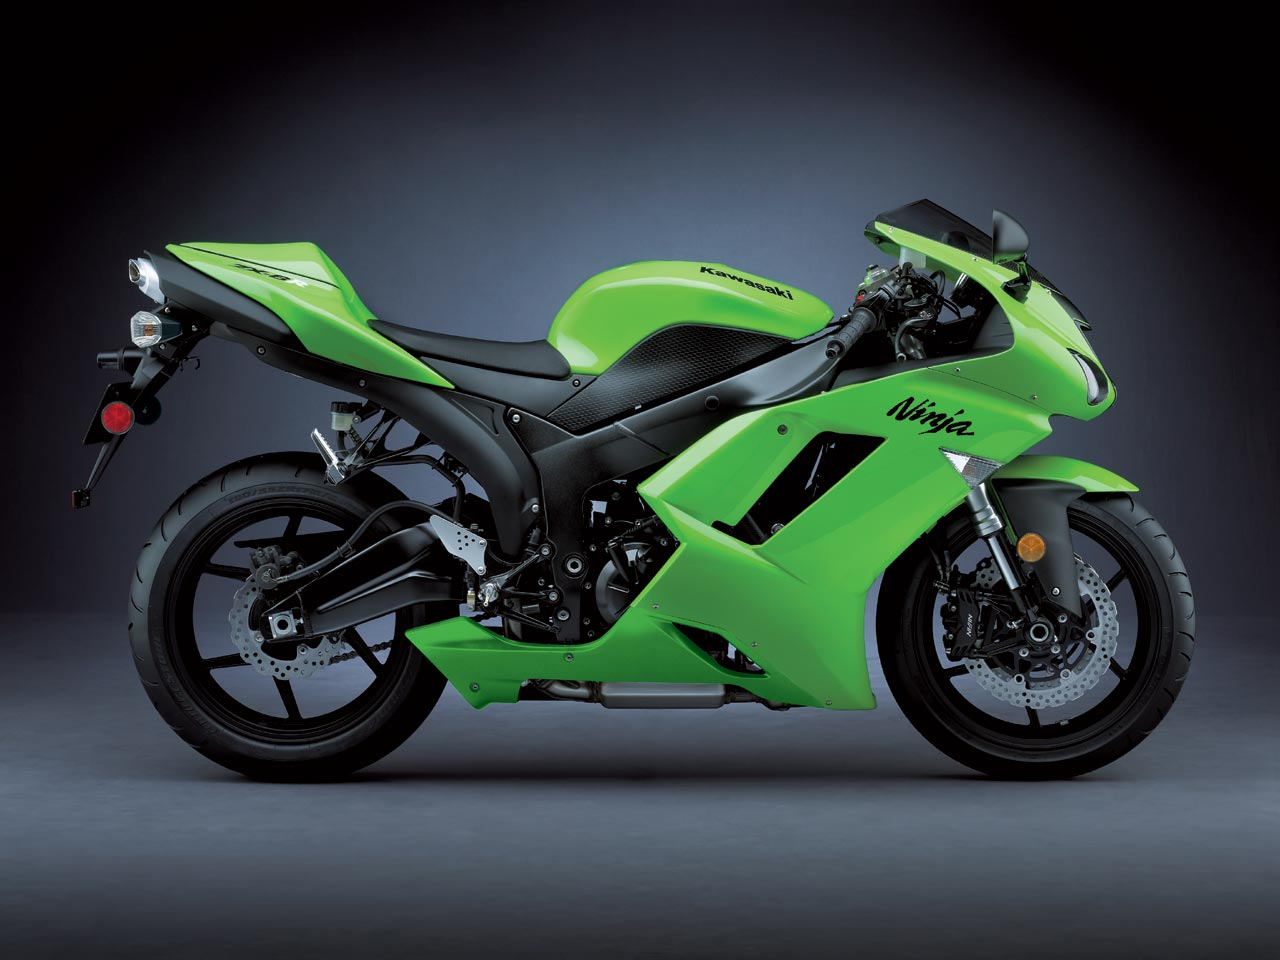 Kawasaki Ninja ZX6R Wallpapers   Top Kawasaki Ninja ZX6R 1280x960